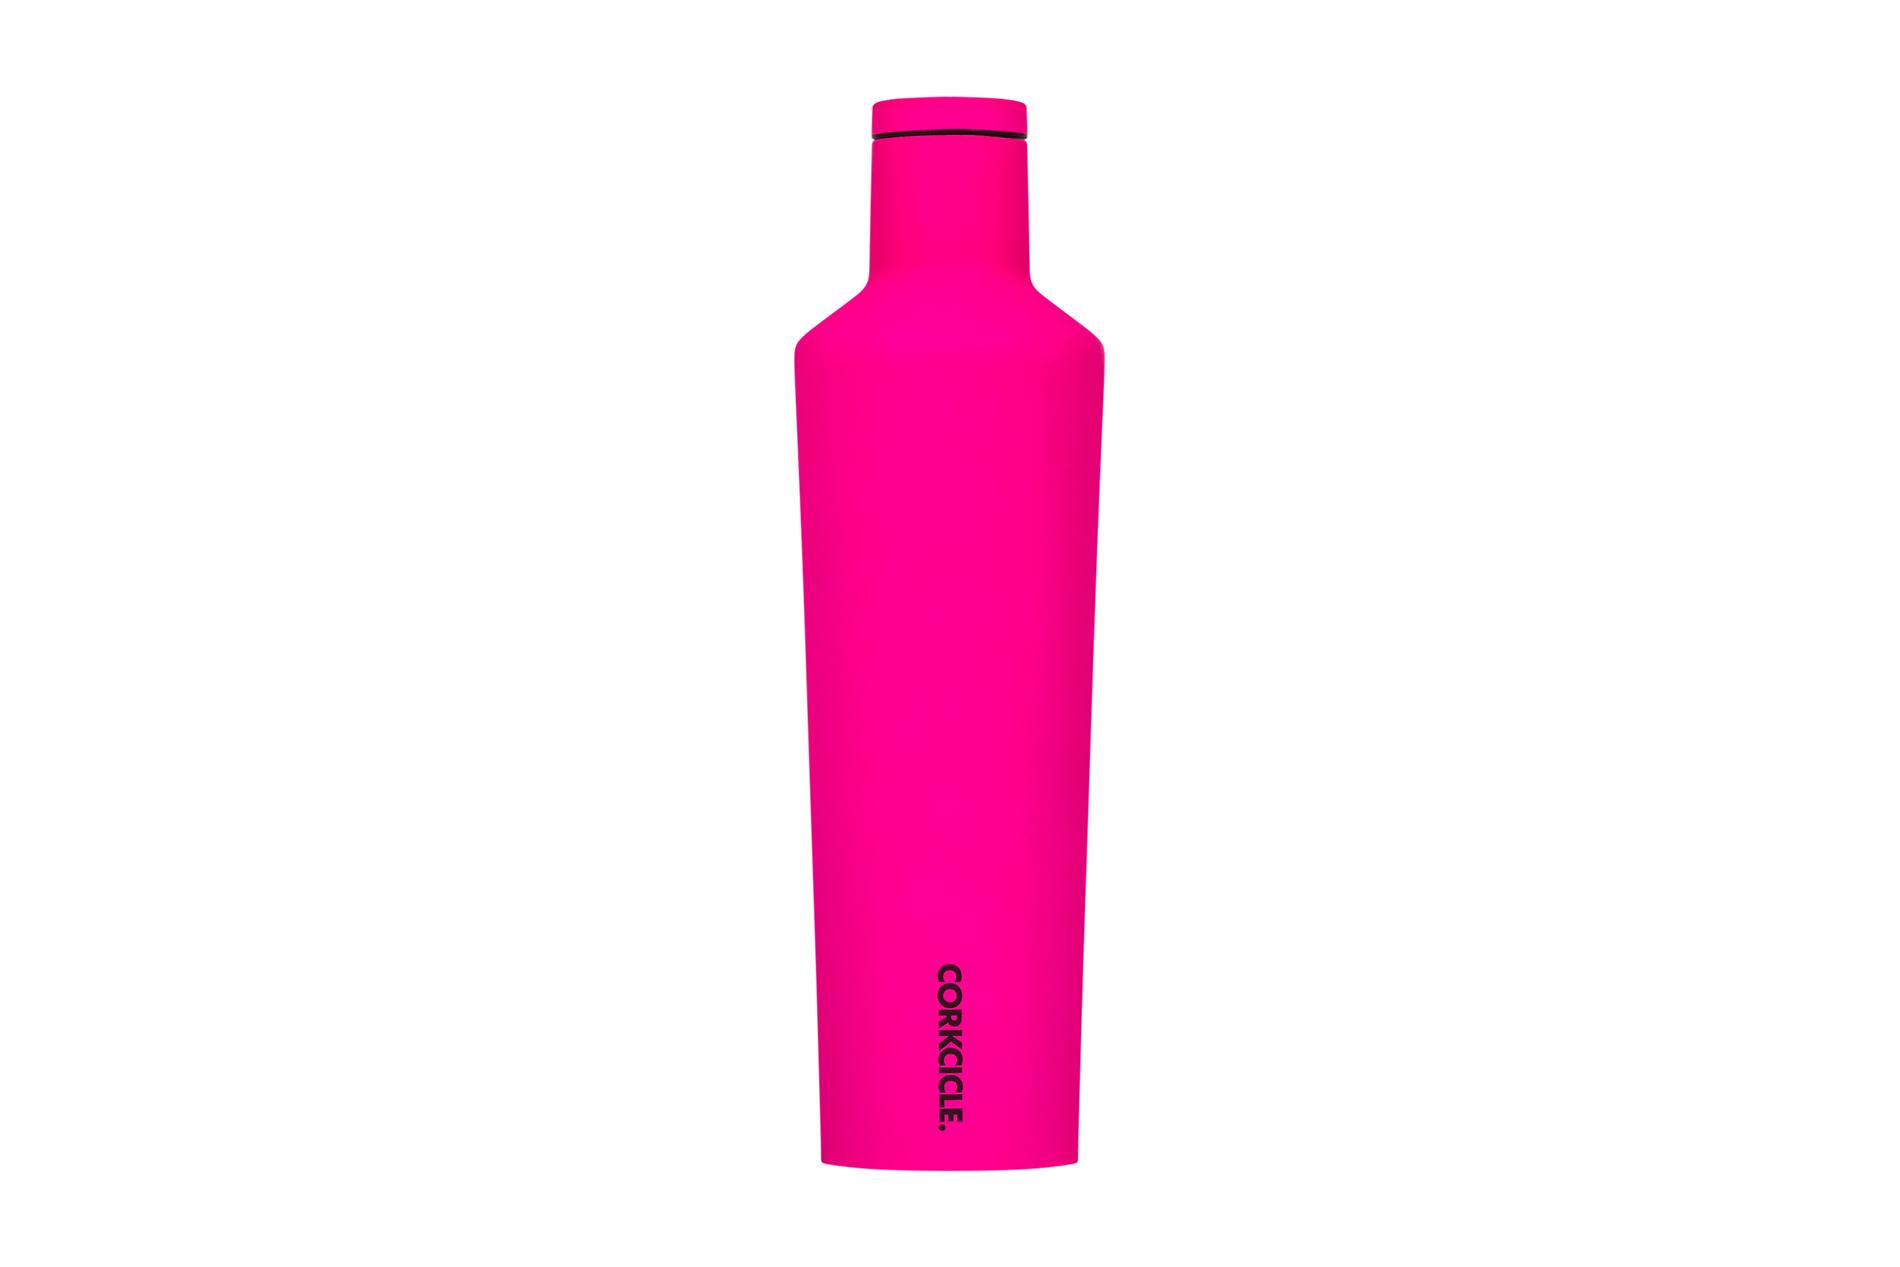 Corkcicle Trinkflasche / Thermo Isolierflasche Pink 475 ml Neon